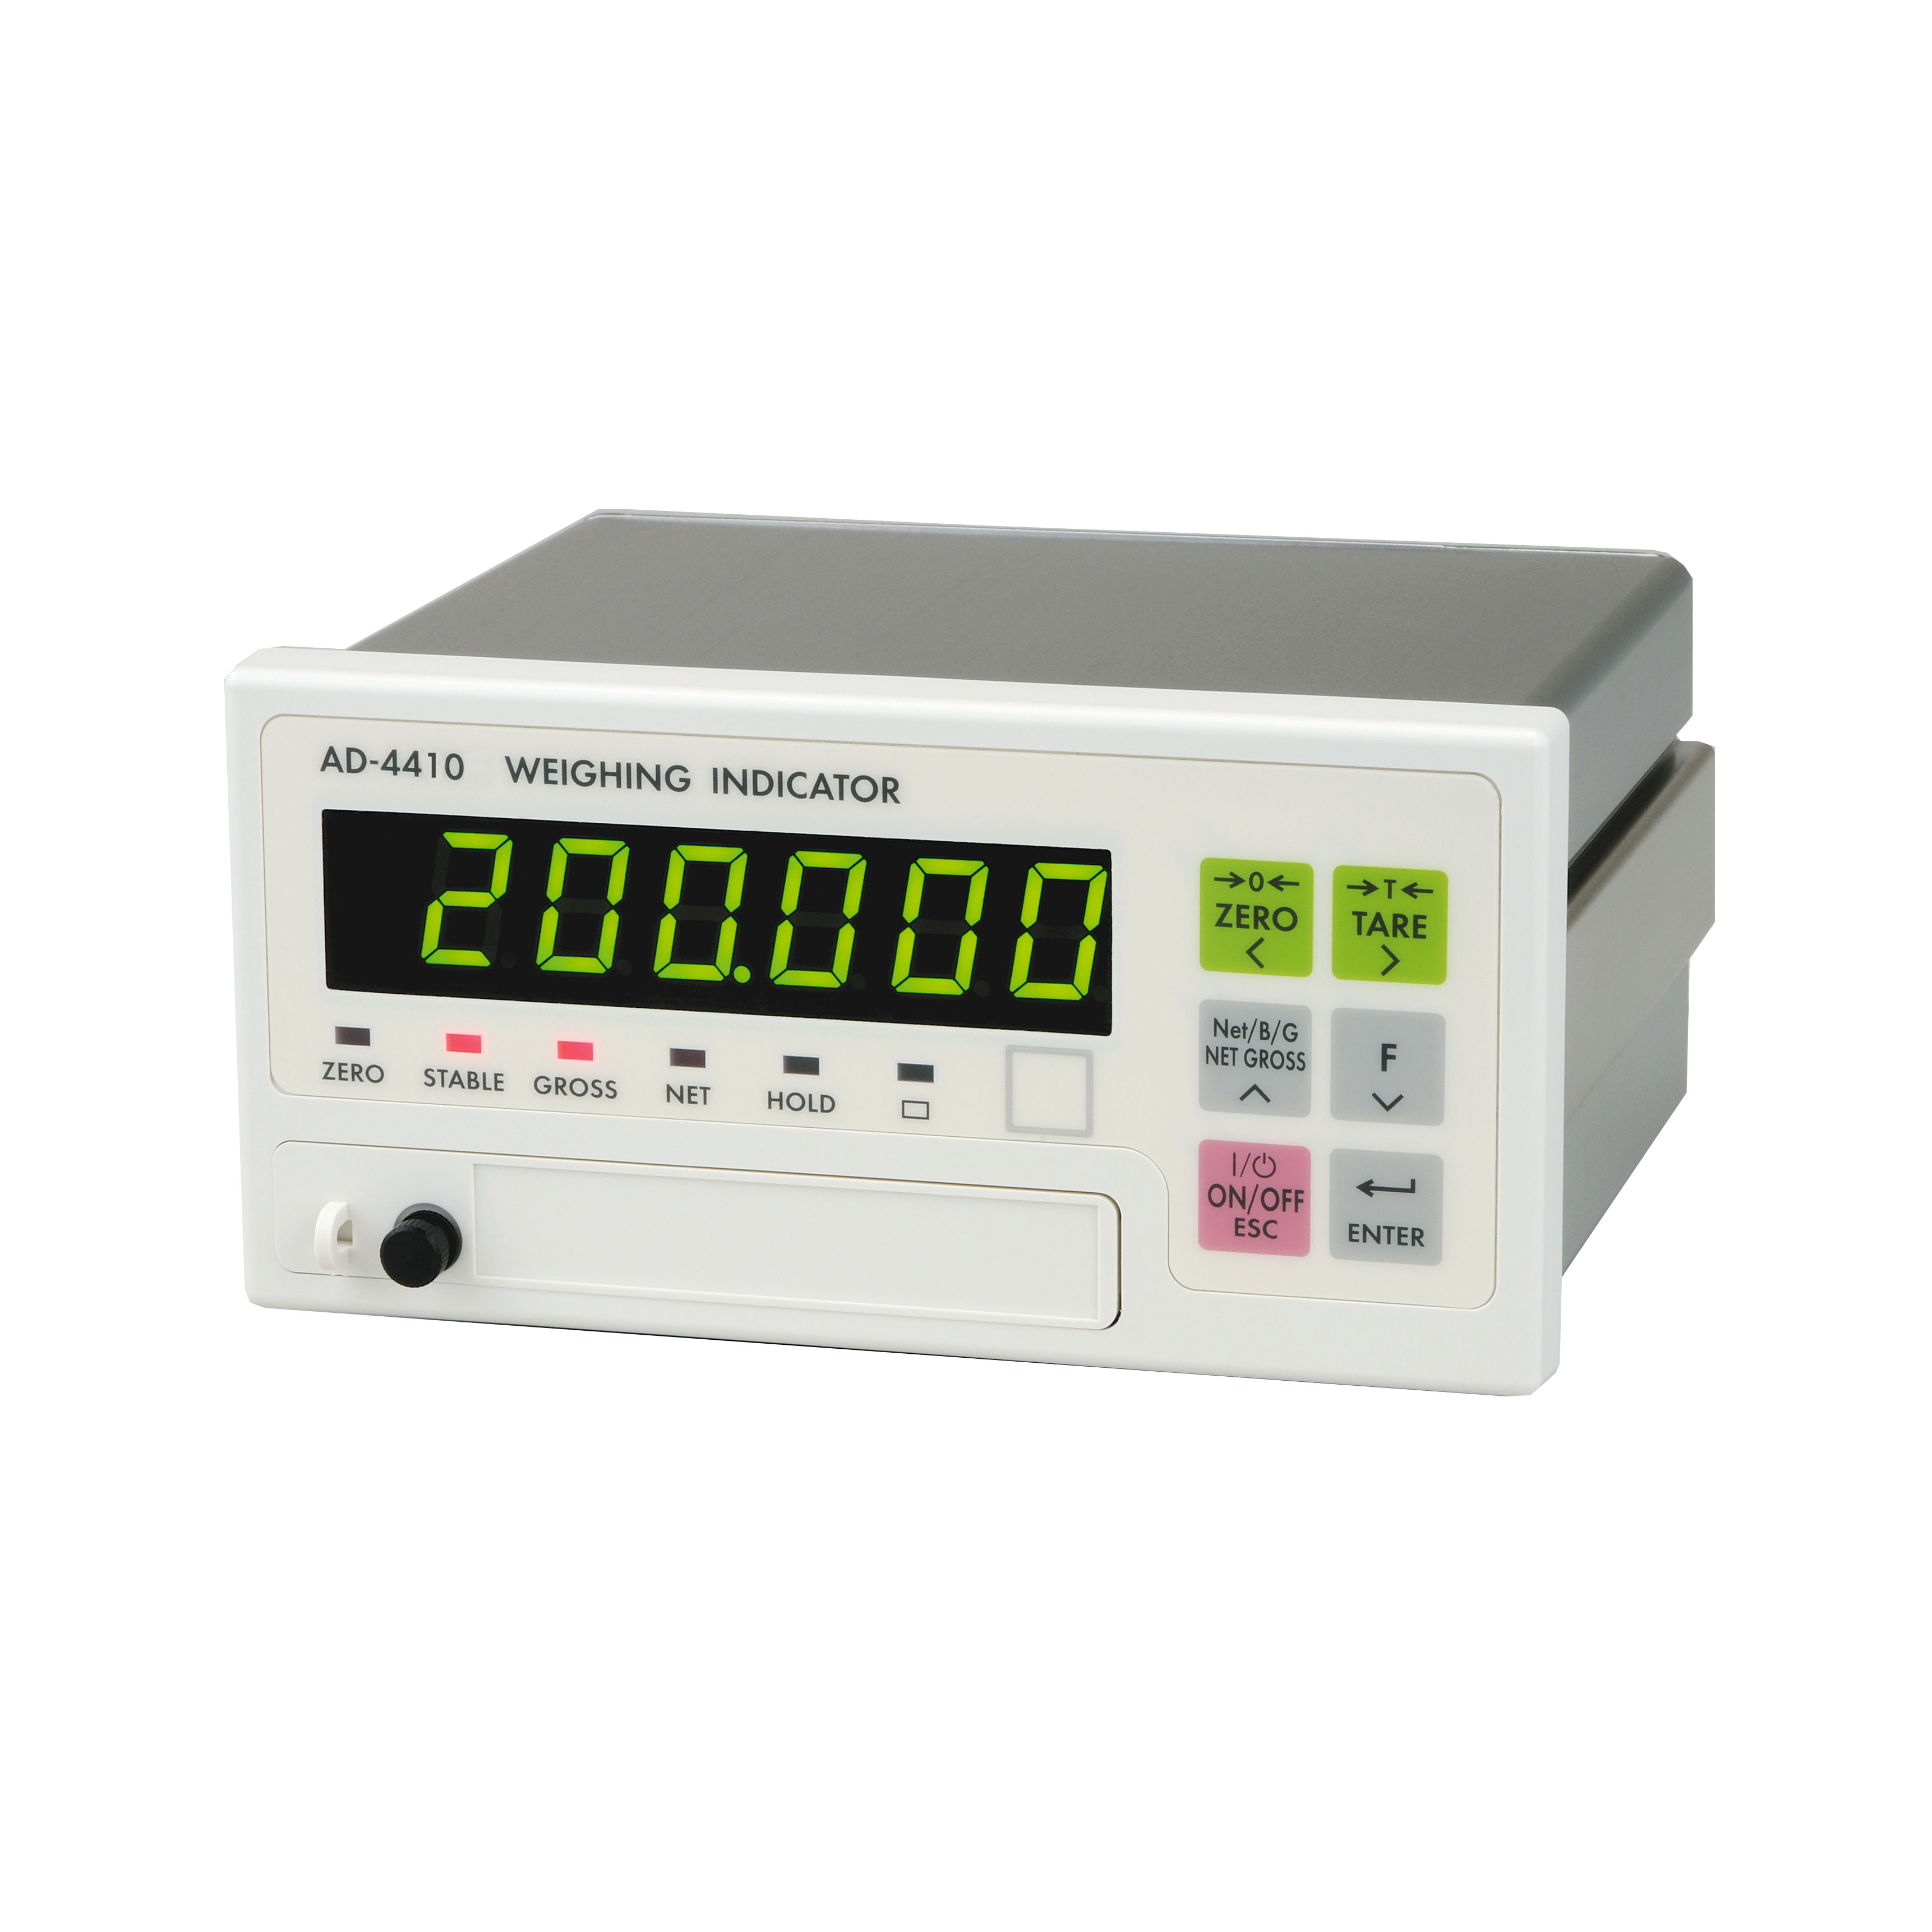 AD-4410 High Speed Anti-Vibration Weighing Indicator - Option